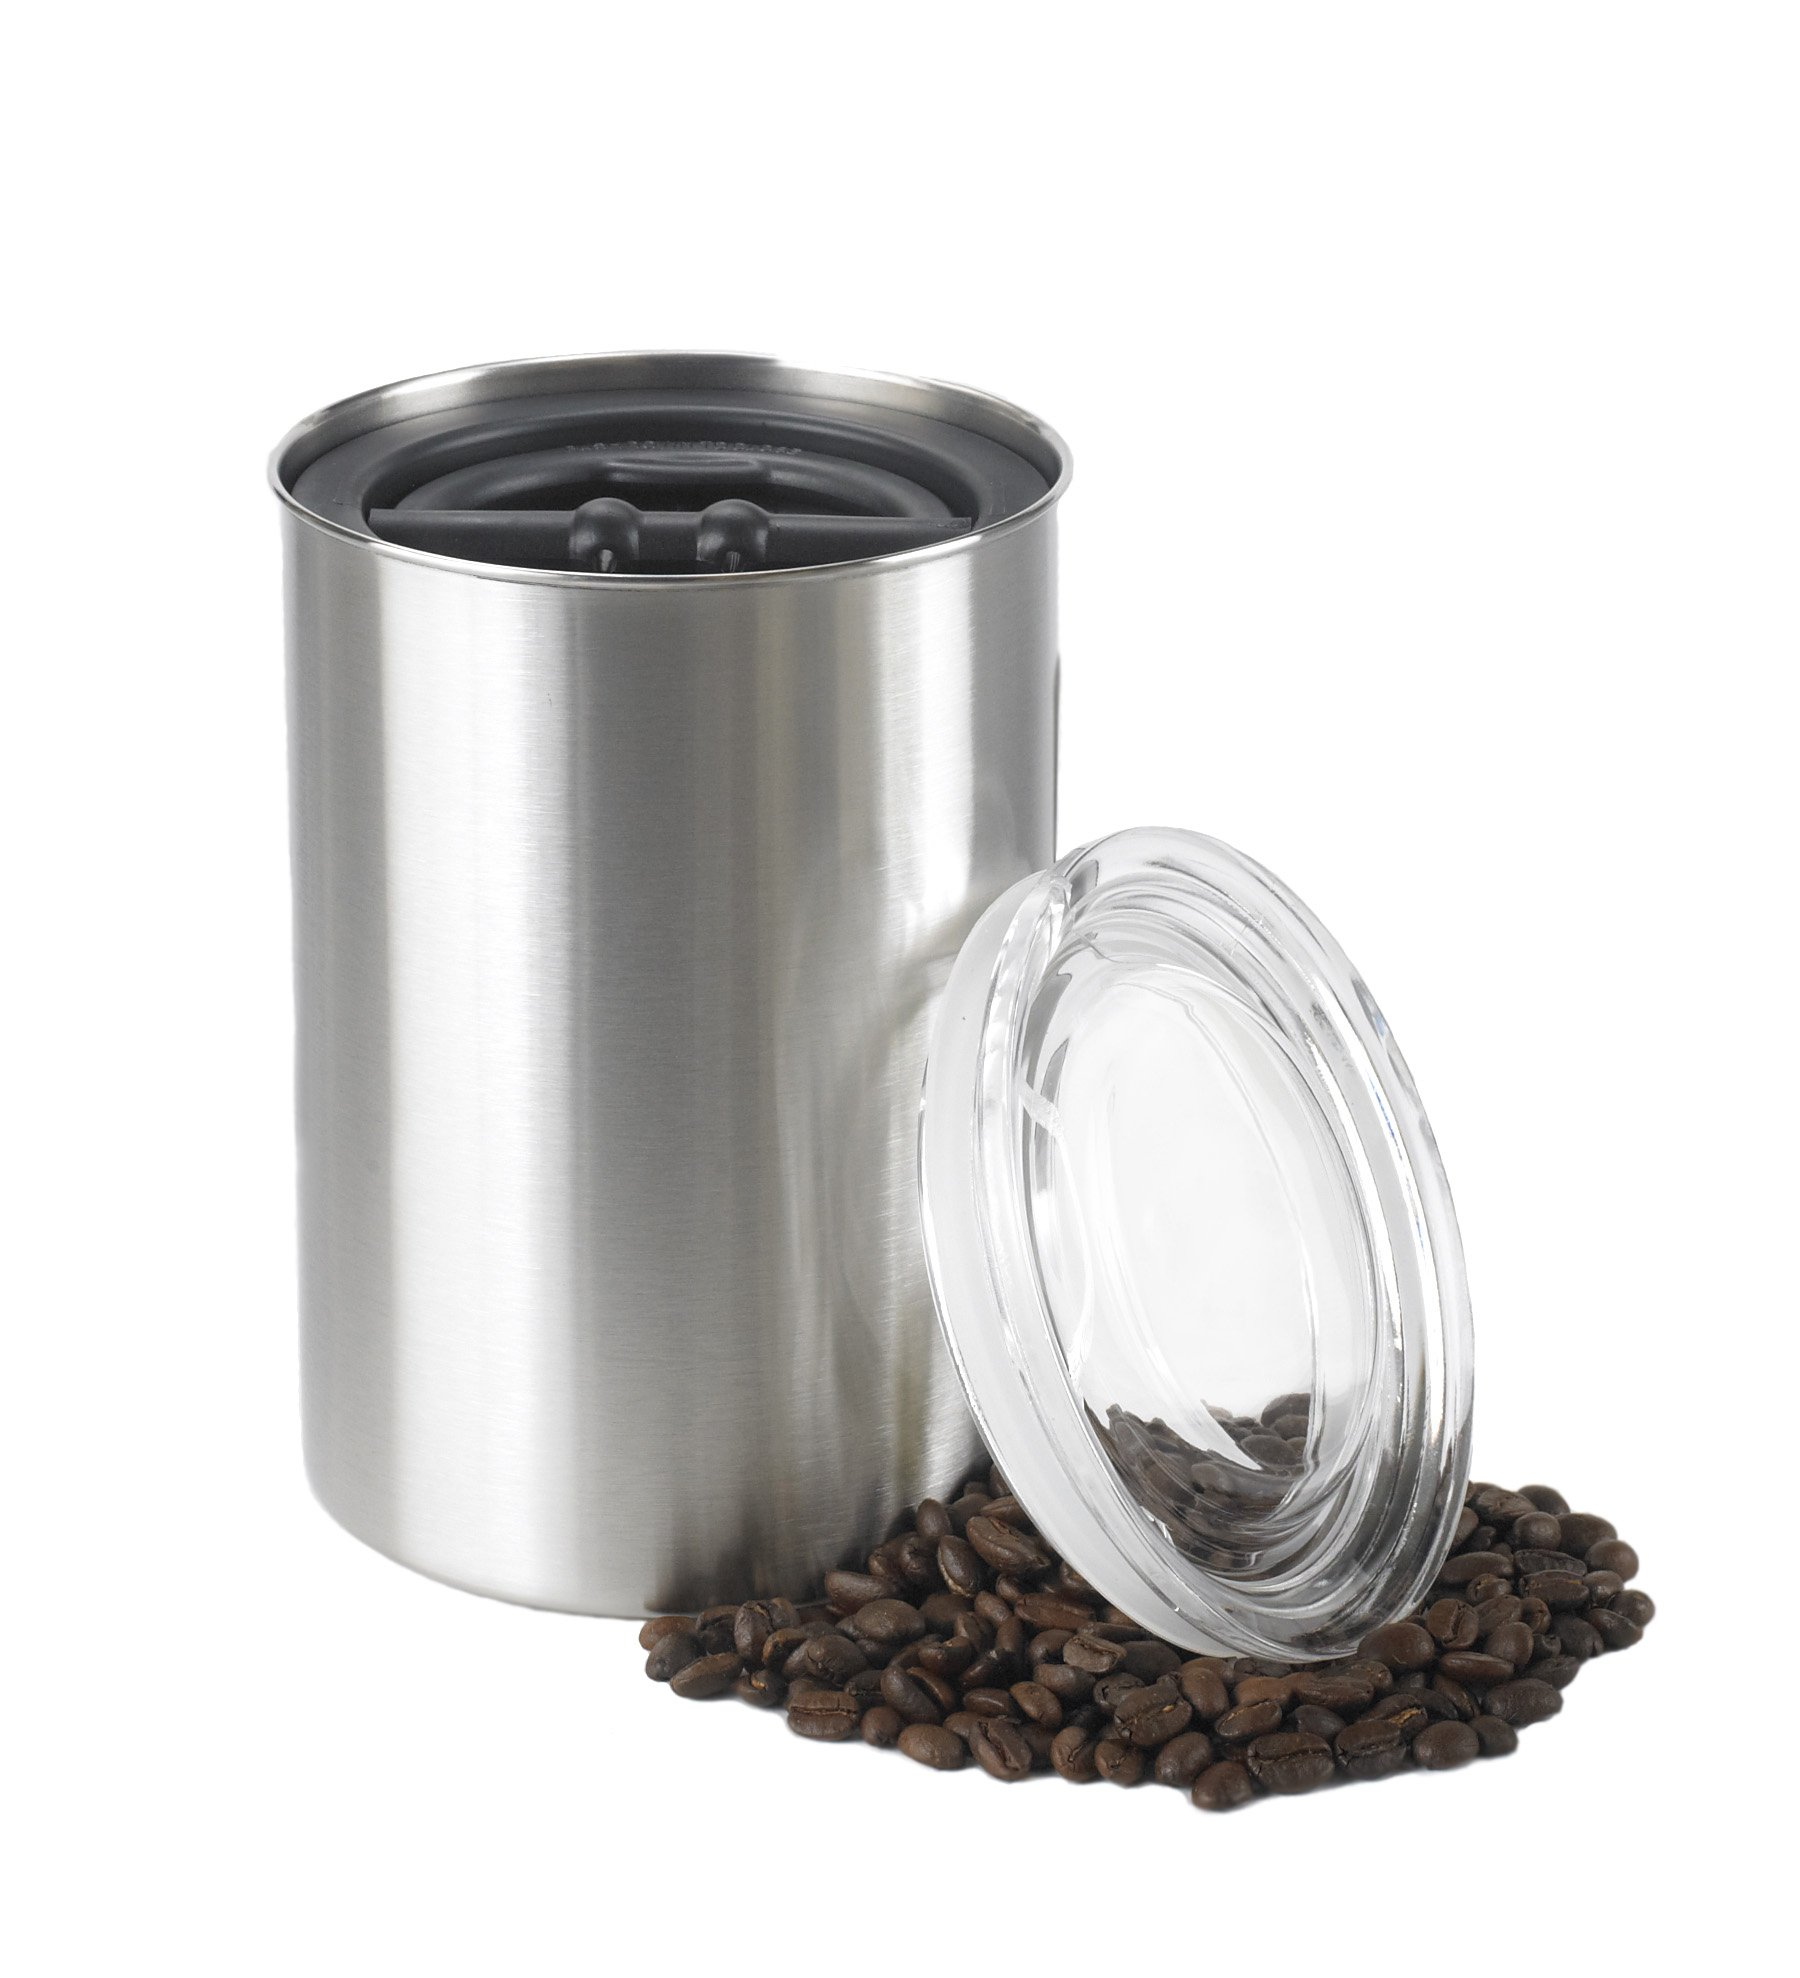 Planetary Design Airscape Coffee Storage Canister (1 lb Dry Beans) - Patented Airtight Lid Pushes Air Out to Preserve Food Freshness - Stainless Steel Food Container - Brushed Steel by Planetary Design (Image #1)